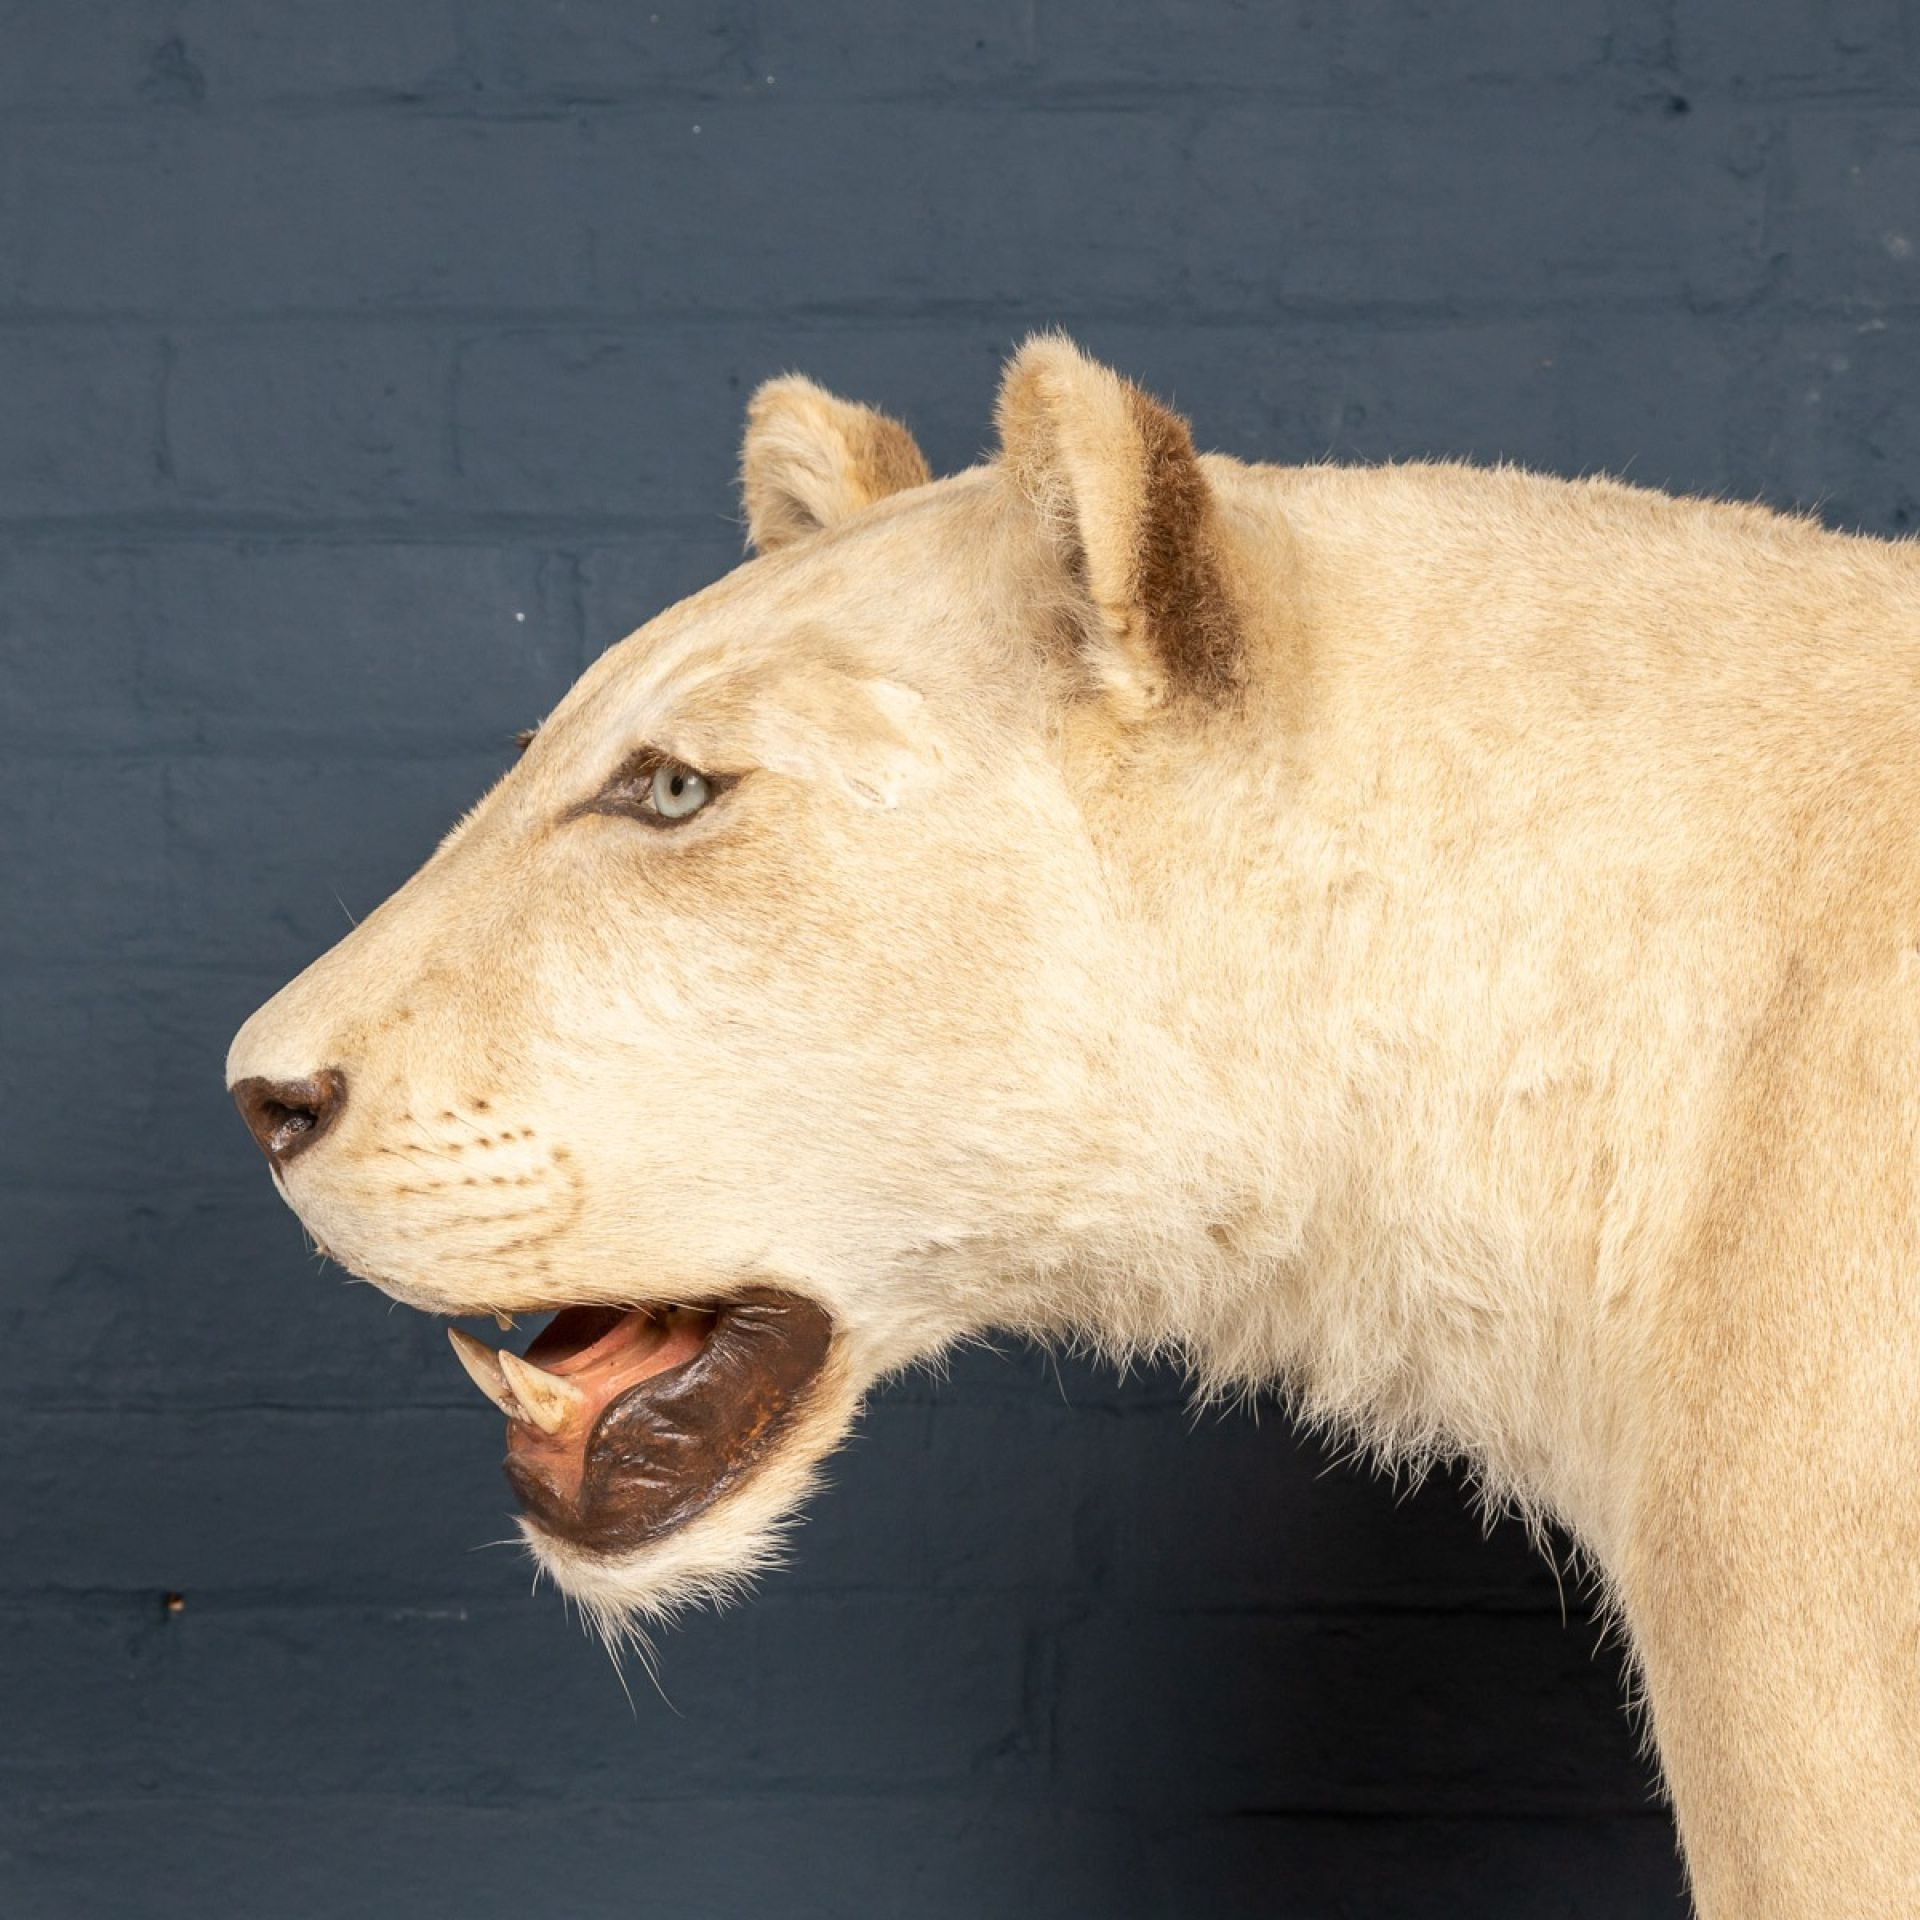 LATE 20TH CENTURY FULL MOUNT TAXIDERMY STUDY OF A PROWLING LIONESS